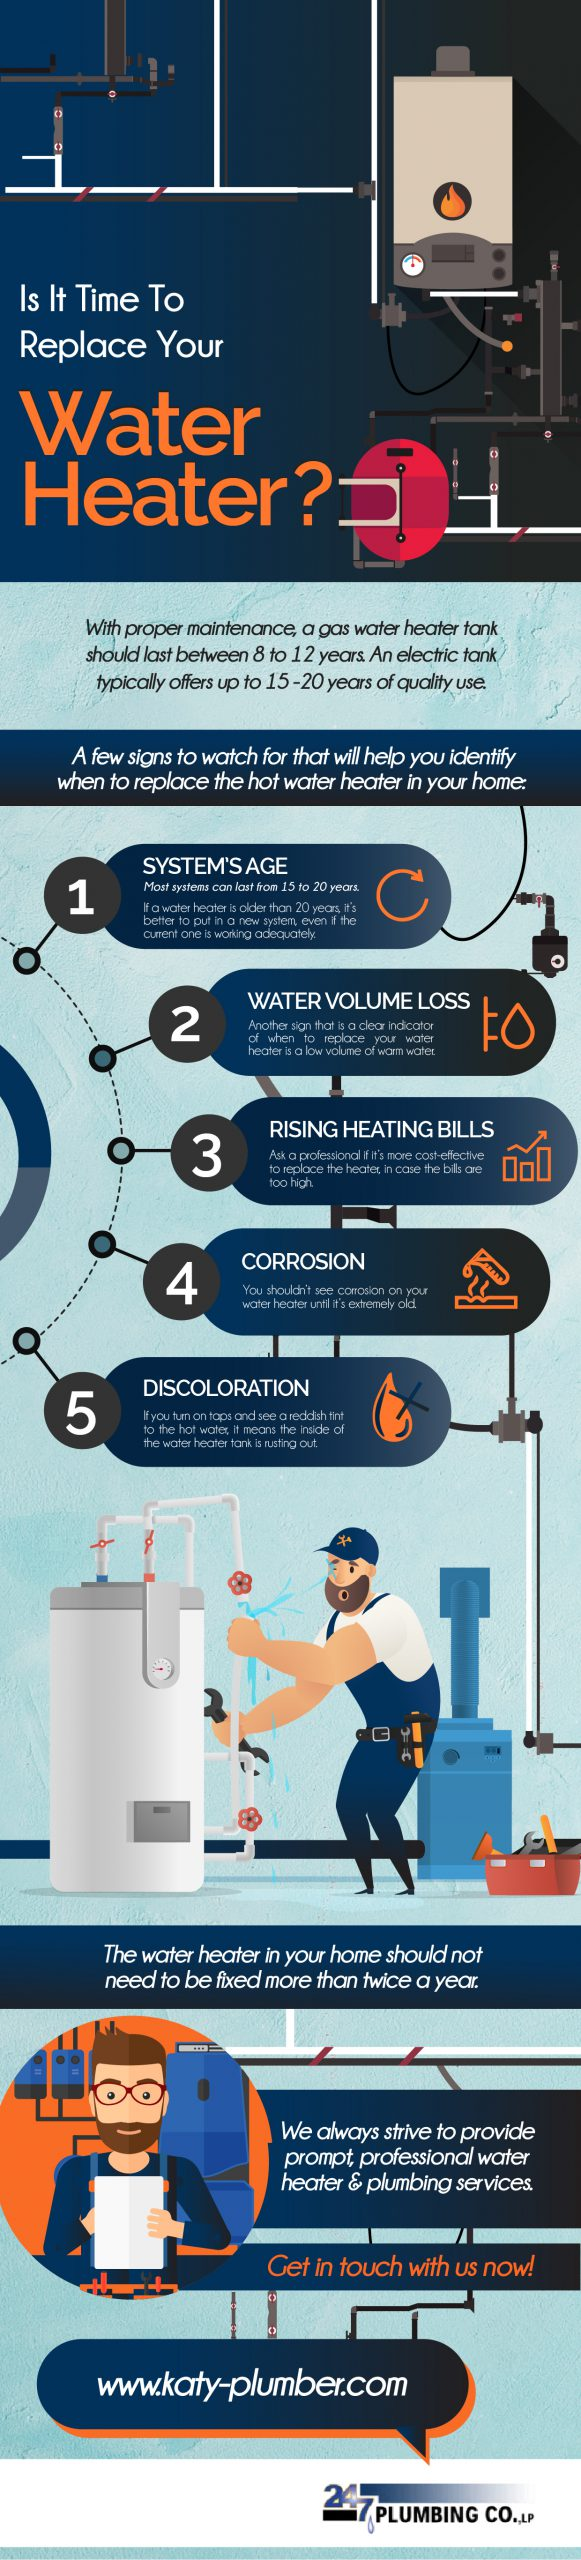 Is It Time to Replace your Water Heater - Infograph